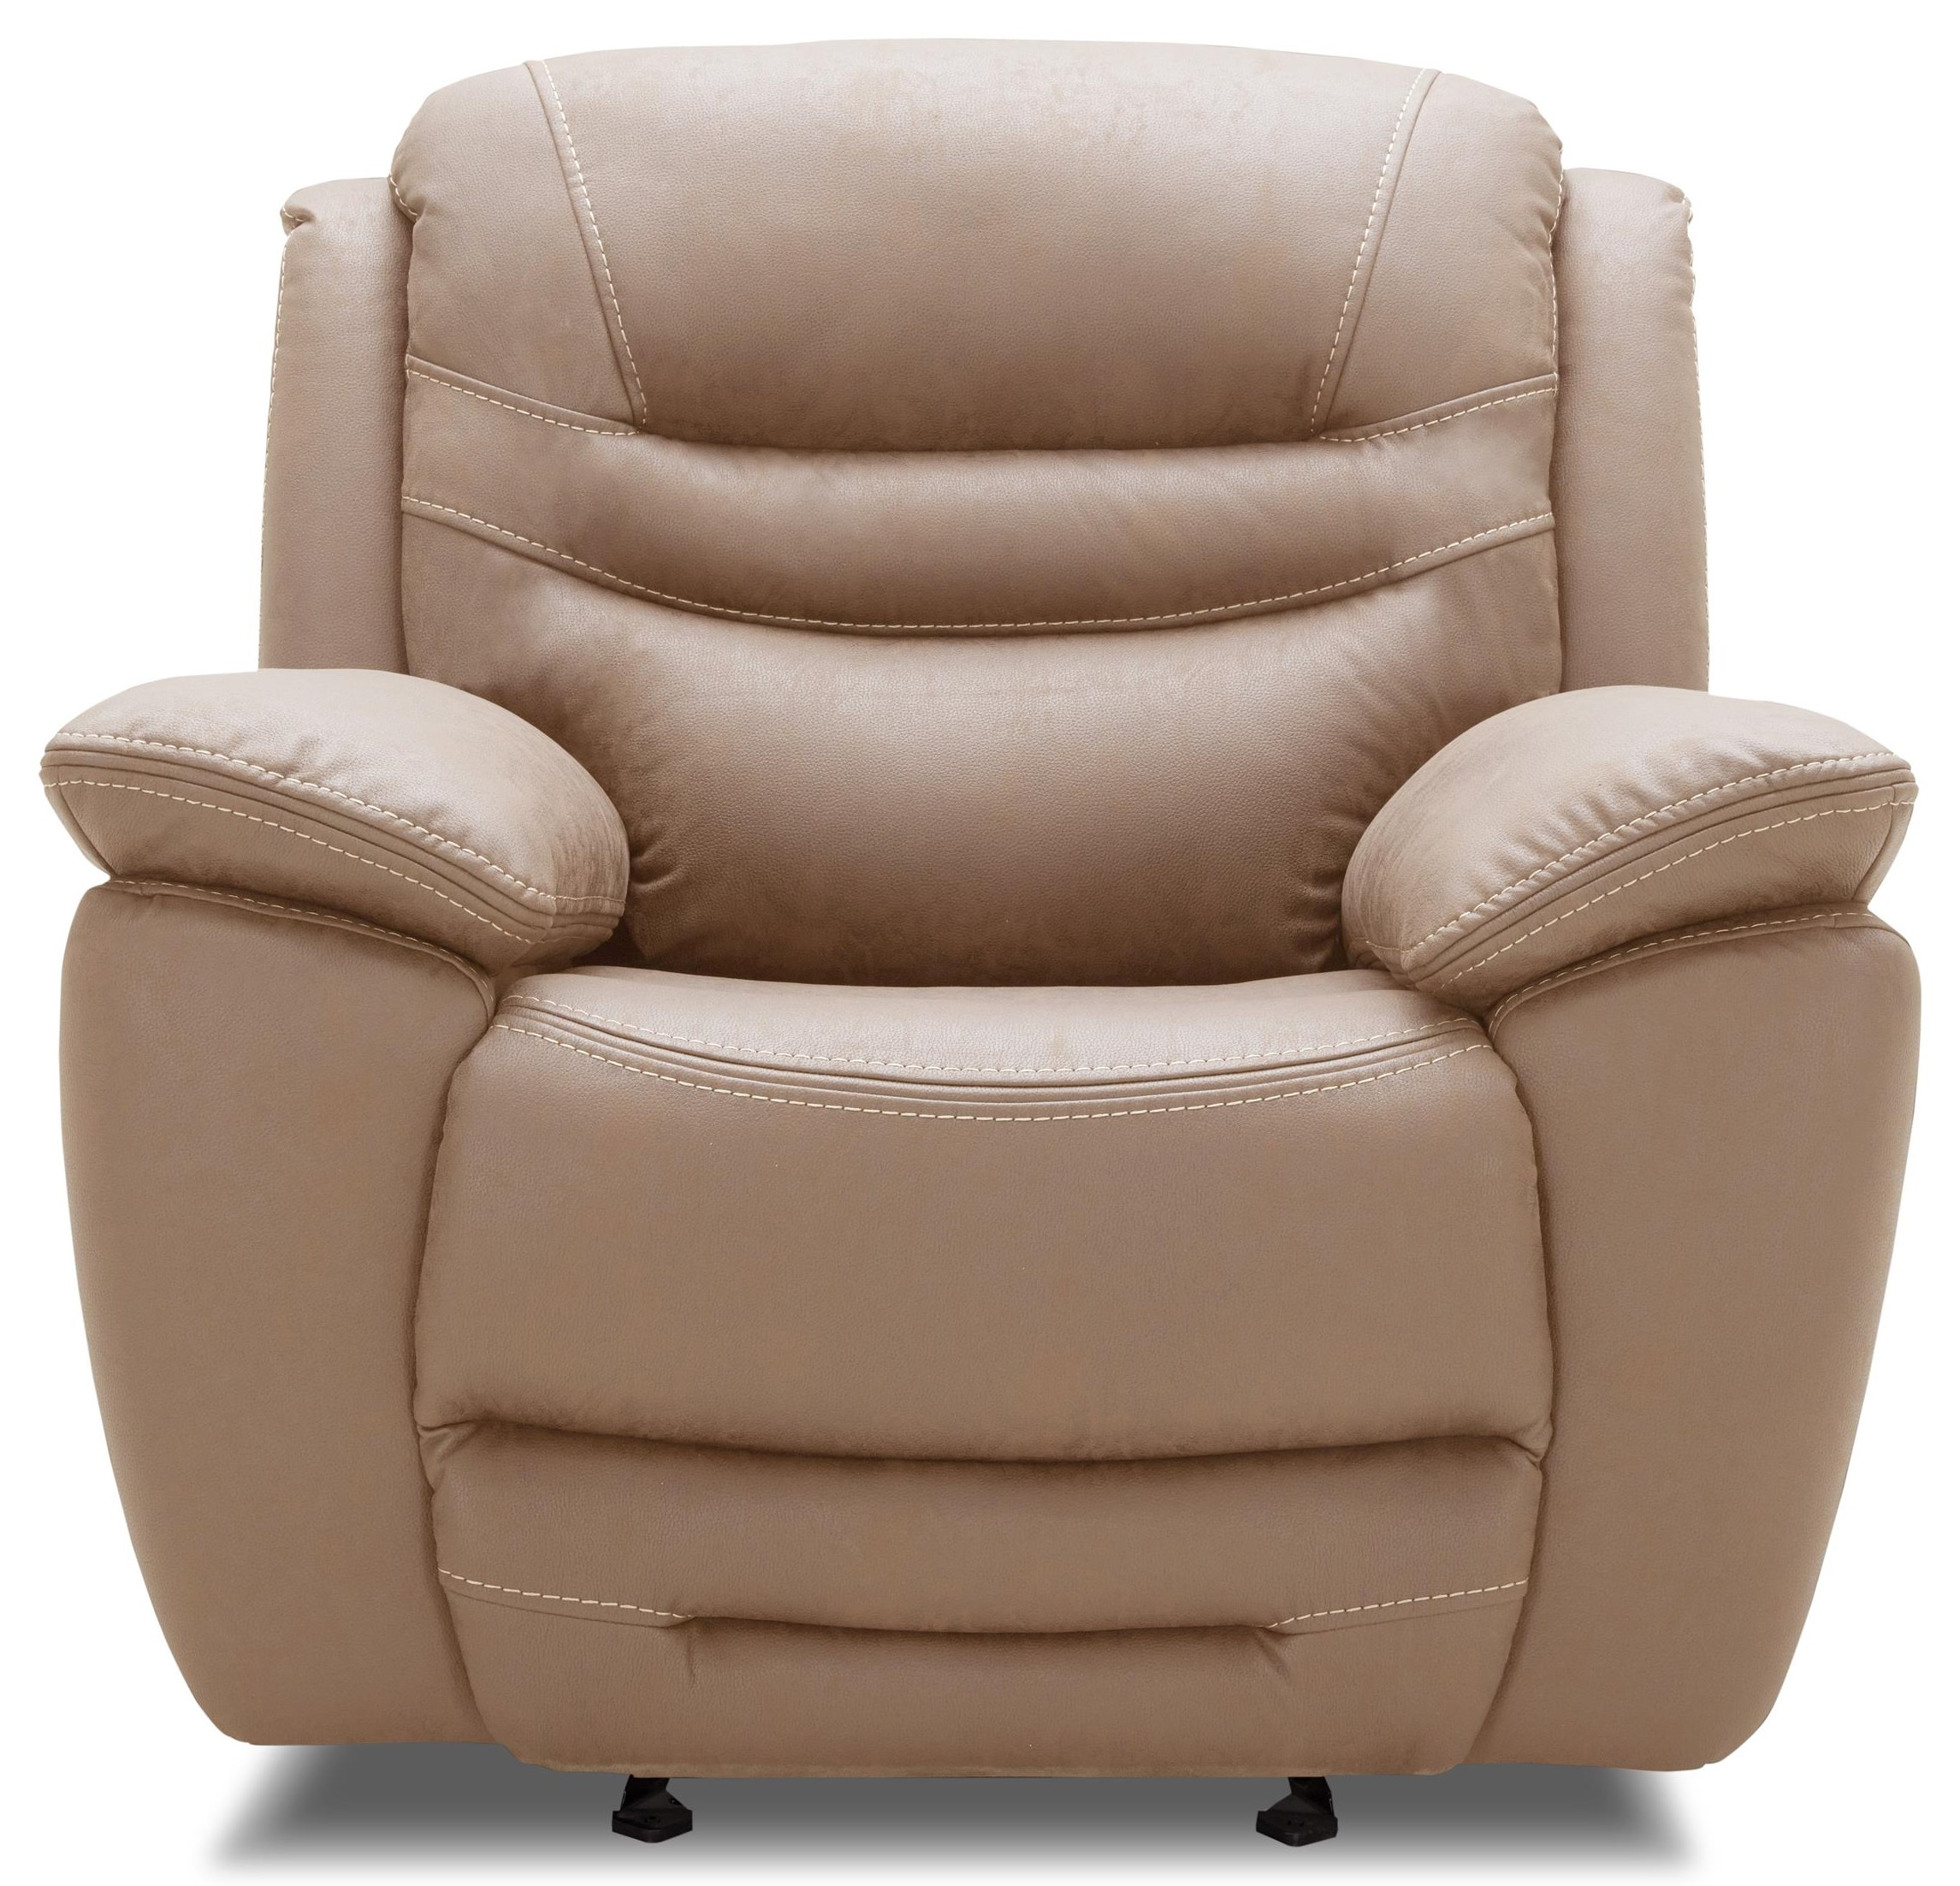 KM083 Power Glider Recliner w/ Pwr Headrest by Kuka Home at Beck's Furniture